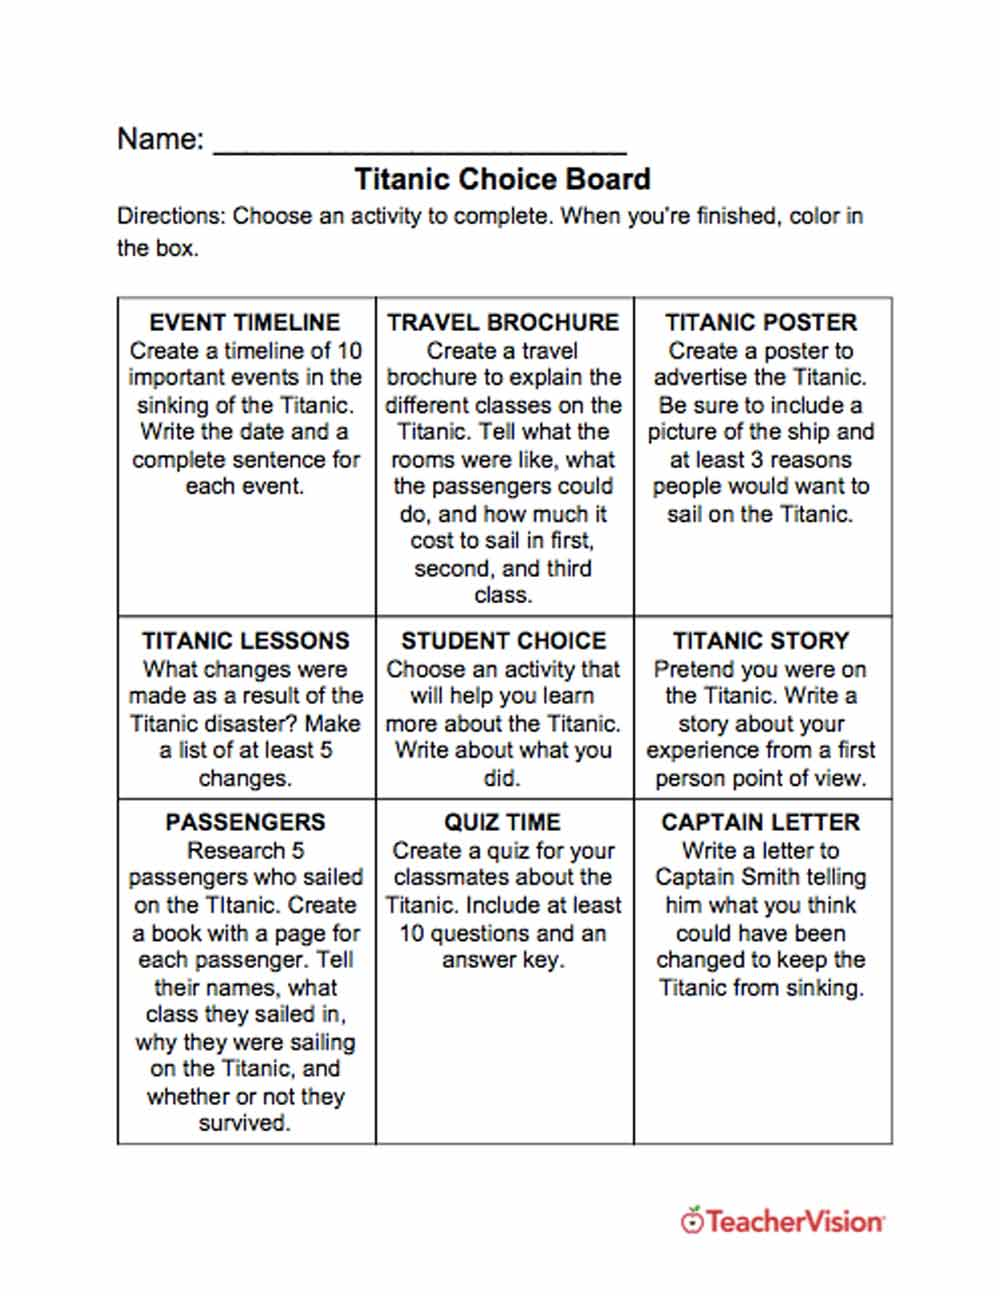 medium resolution of Social Studies and History Graphic Organizers Resources   TeacherVision